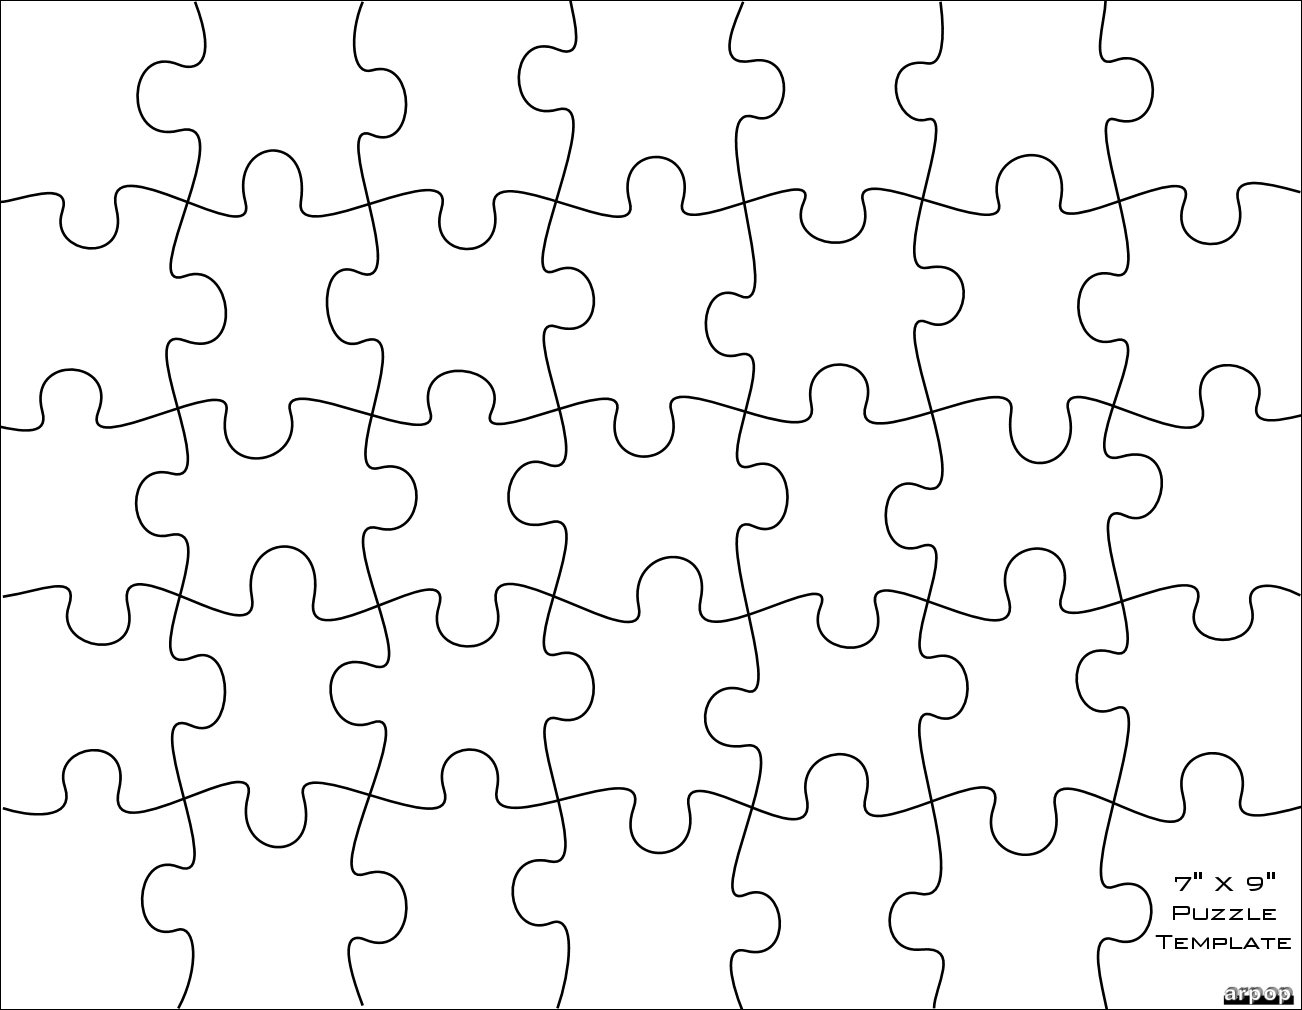 Free Puzzle Template, Download Free Clip Art, Free Clip Art On - Printable Jigsaw Puzzles 6 Pieces